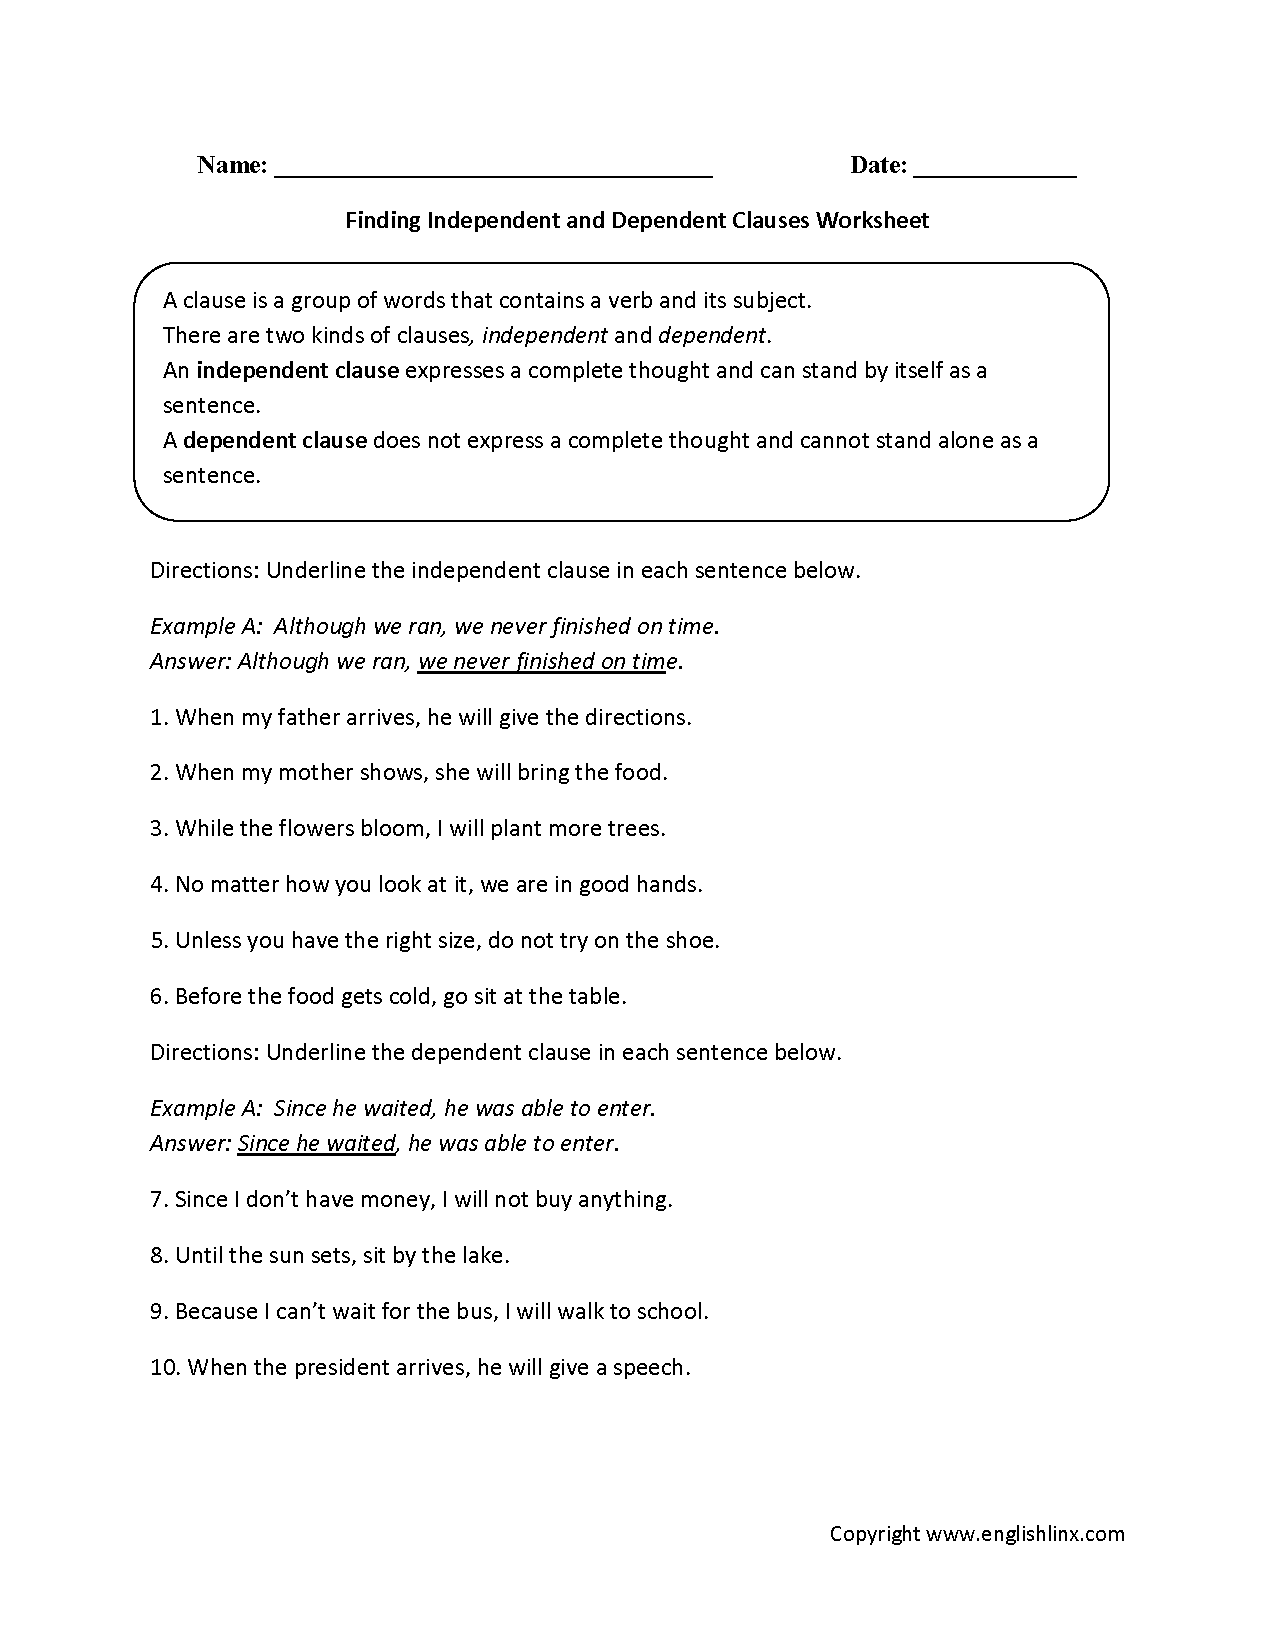 worksheet Dependent Clause Worksheet With Answers finding independent and dependent clauses worksheet education this directs the student to find in each sentence